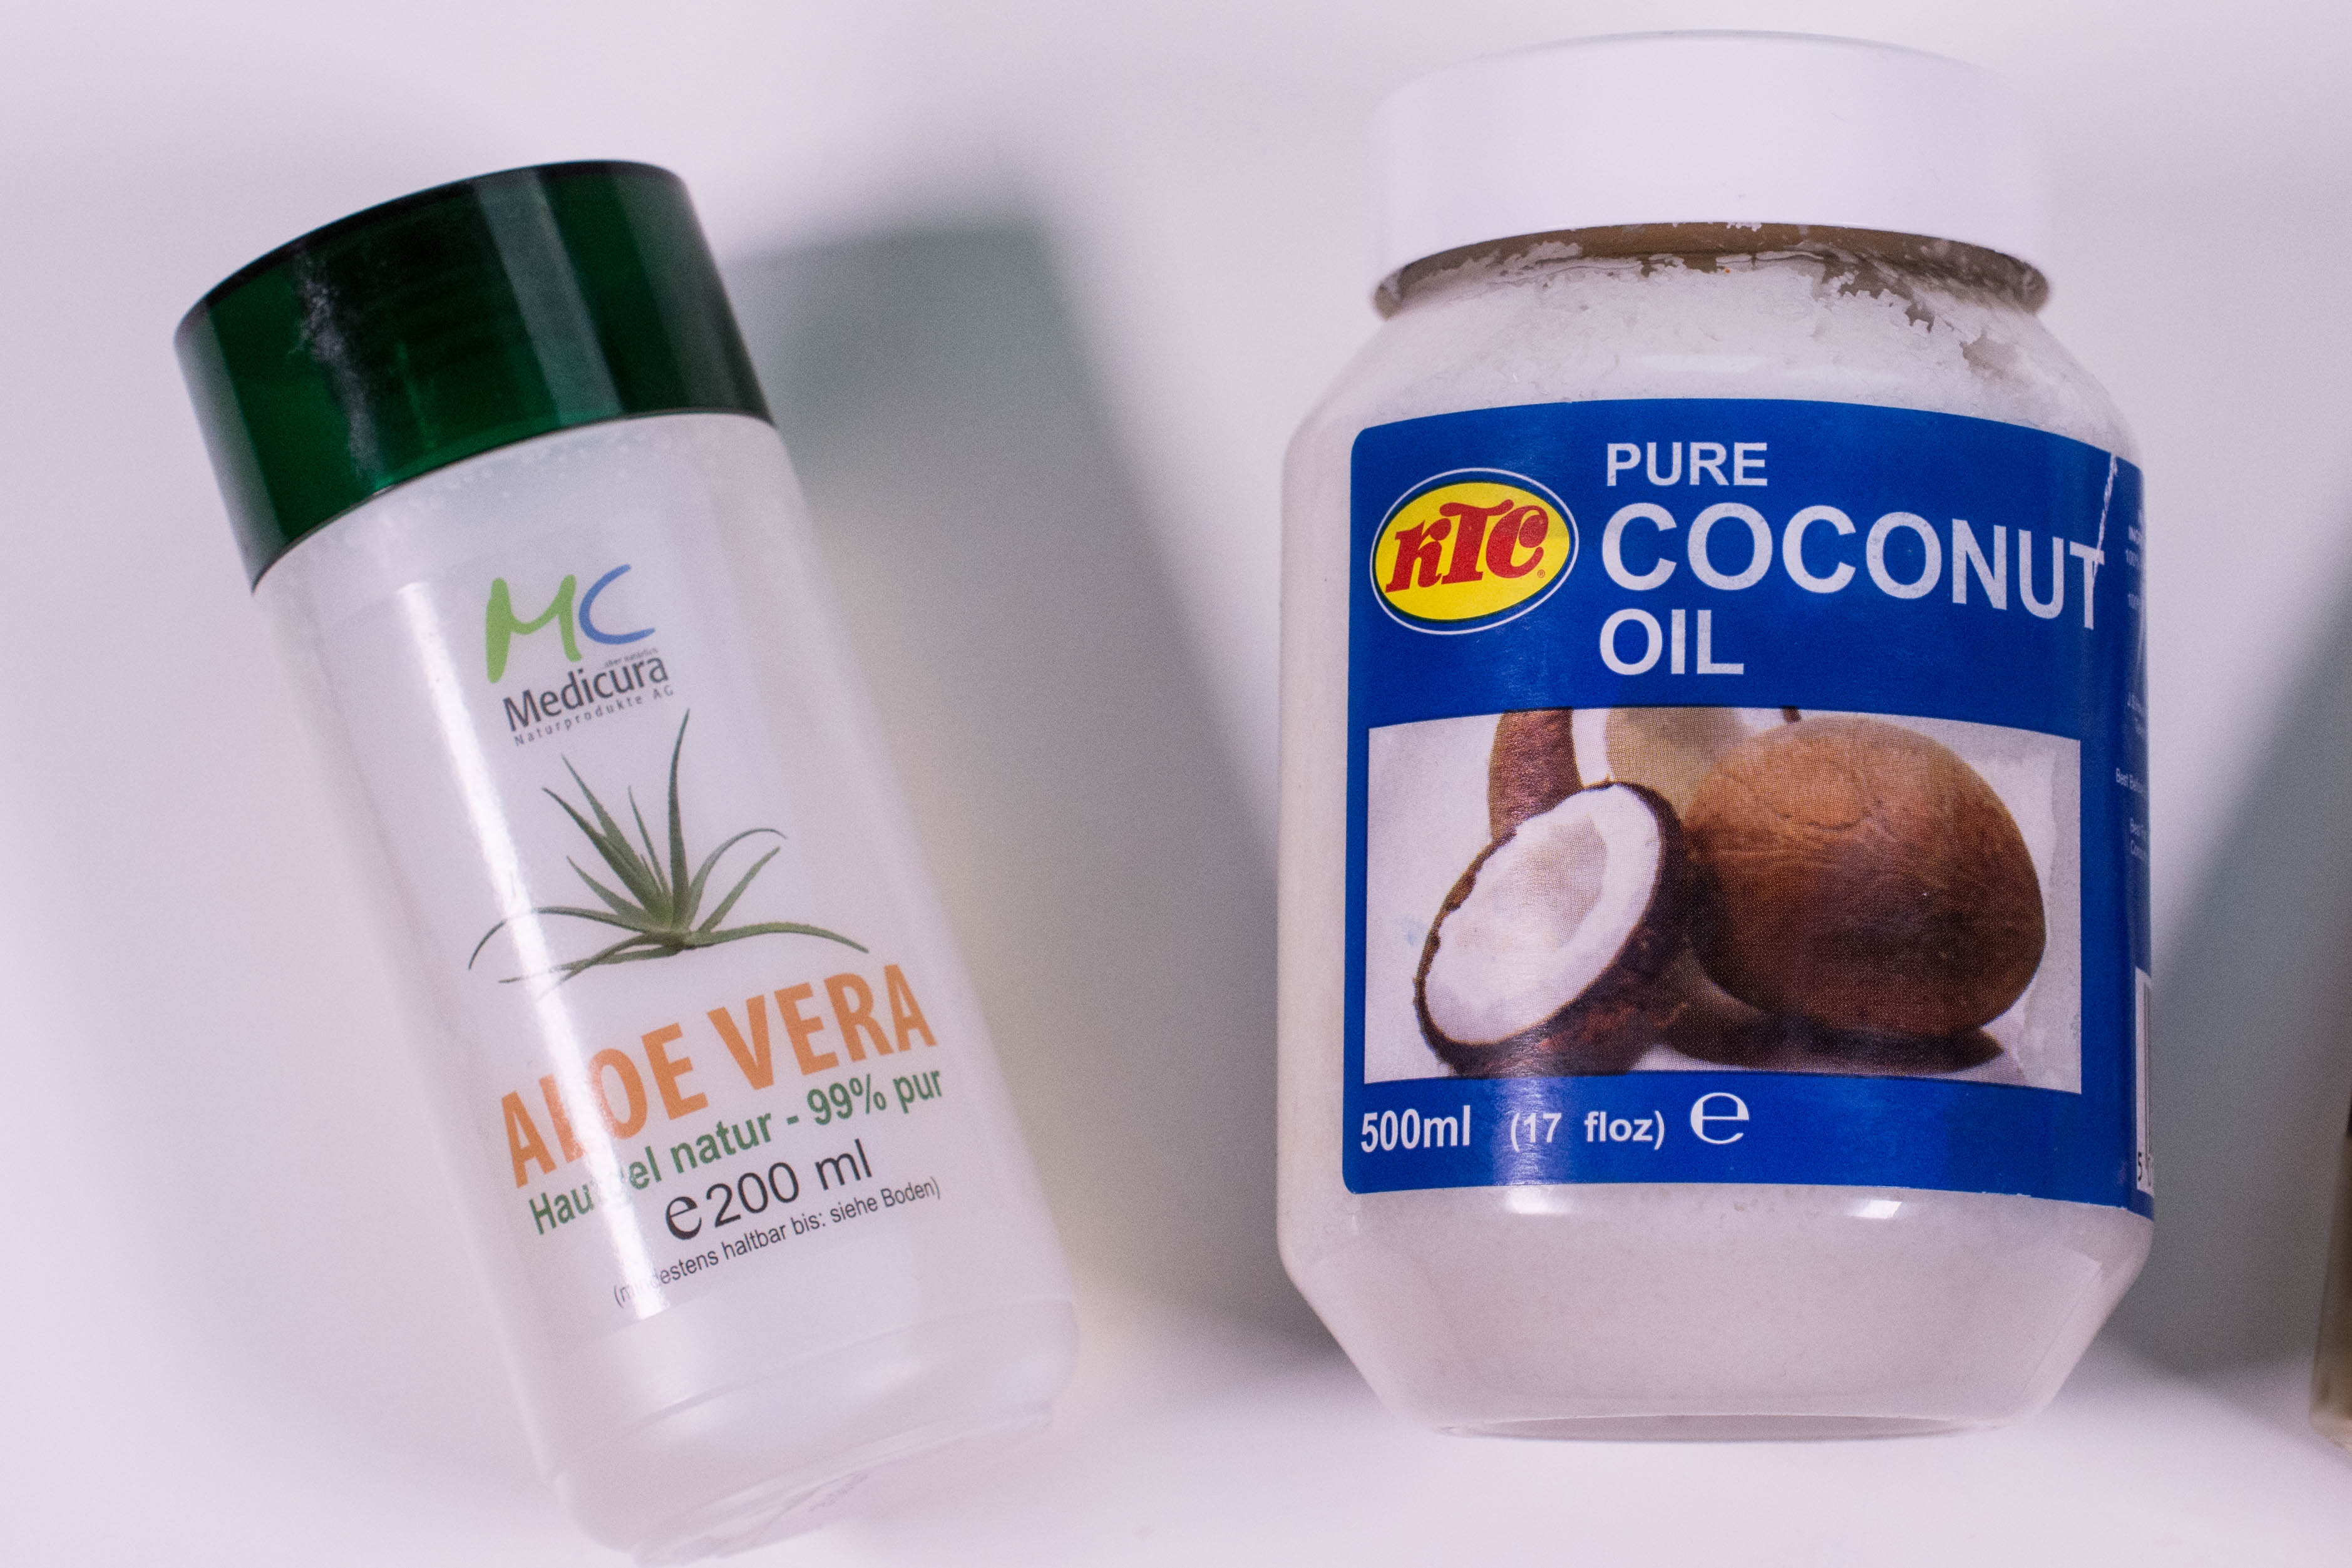 Aloe and coconut, with a little bit of olive oil for good measure